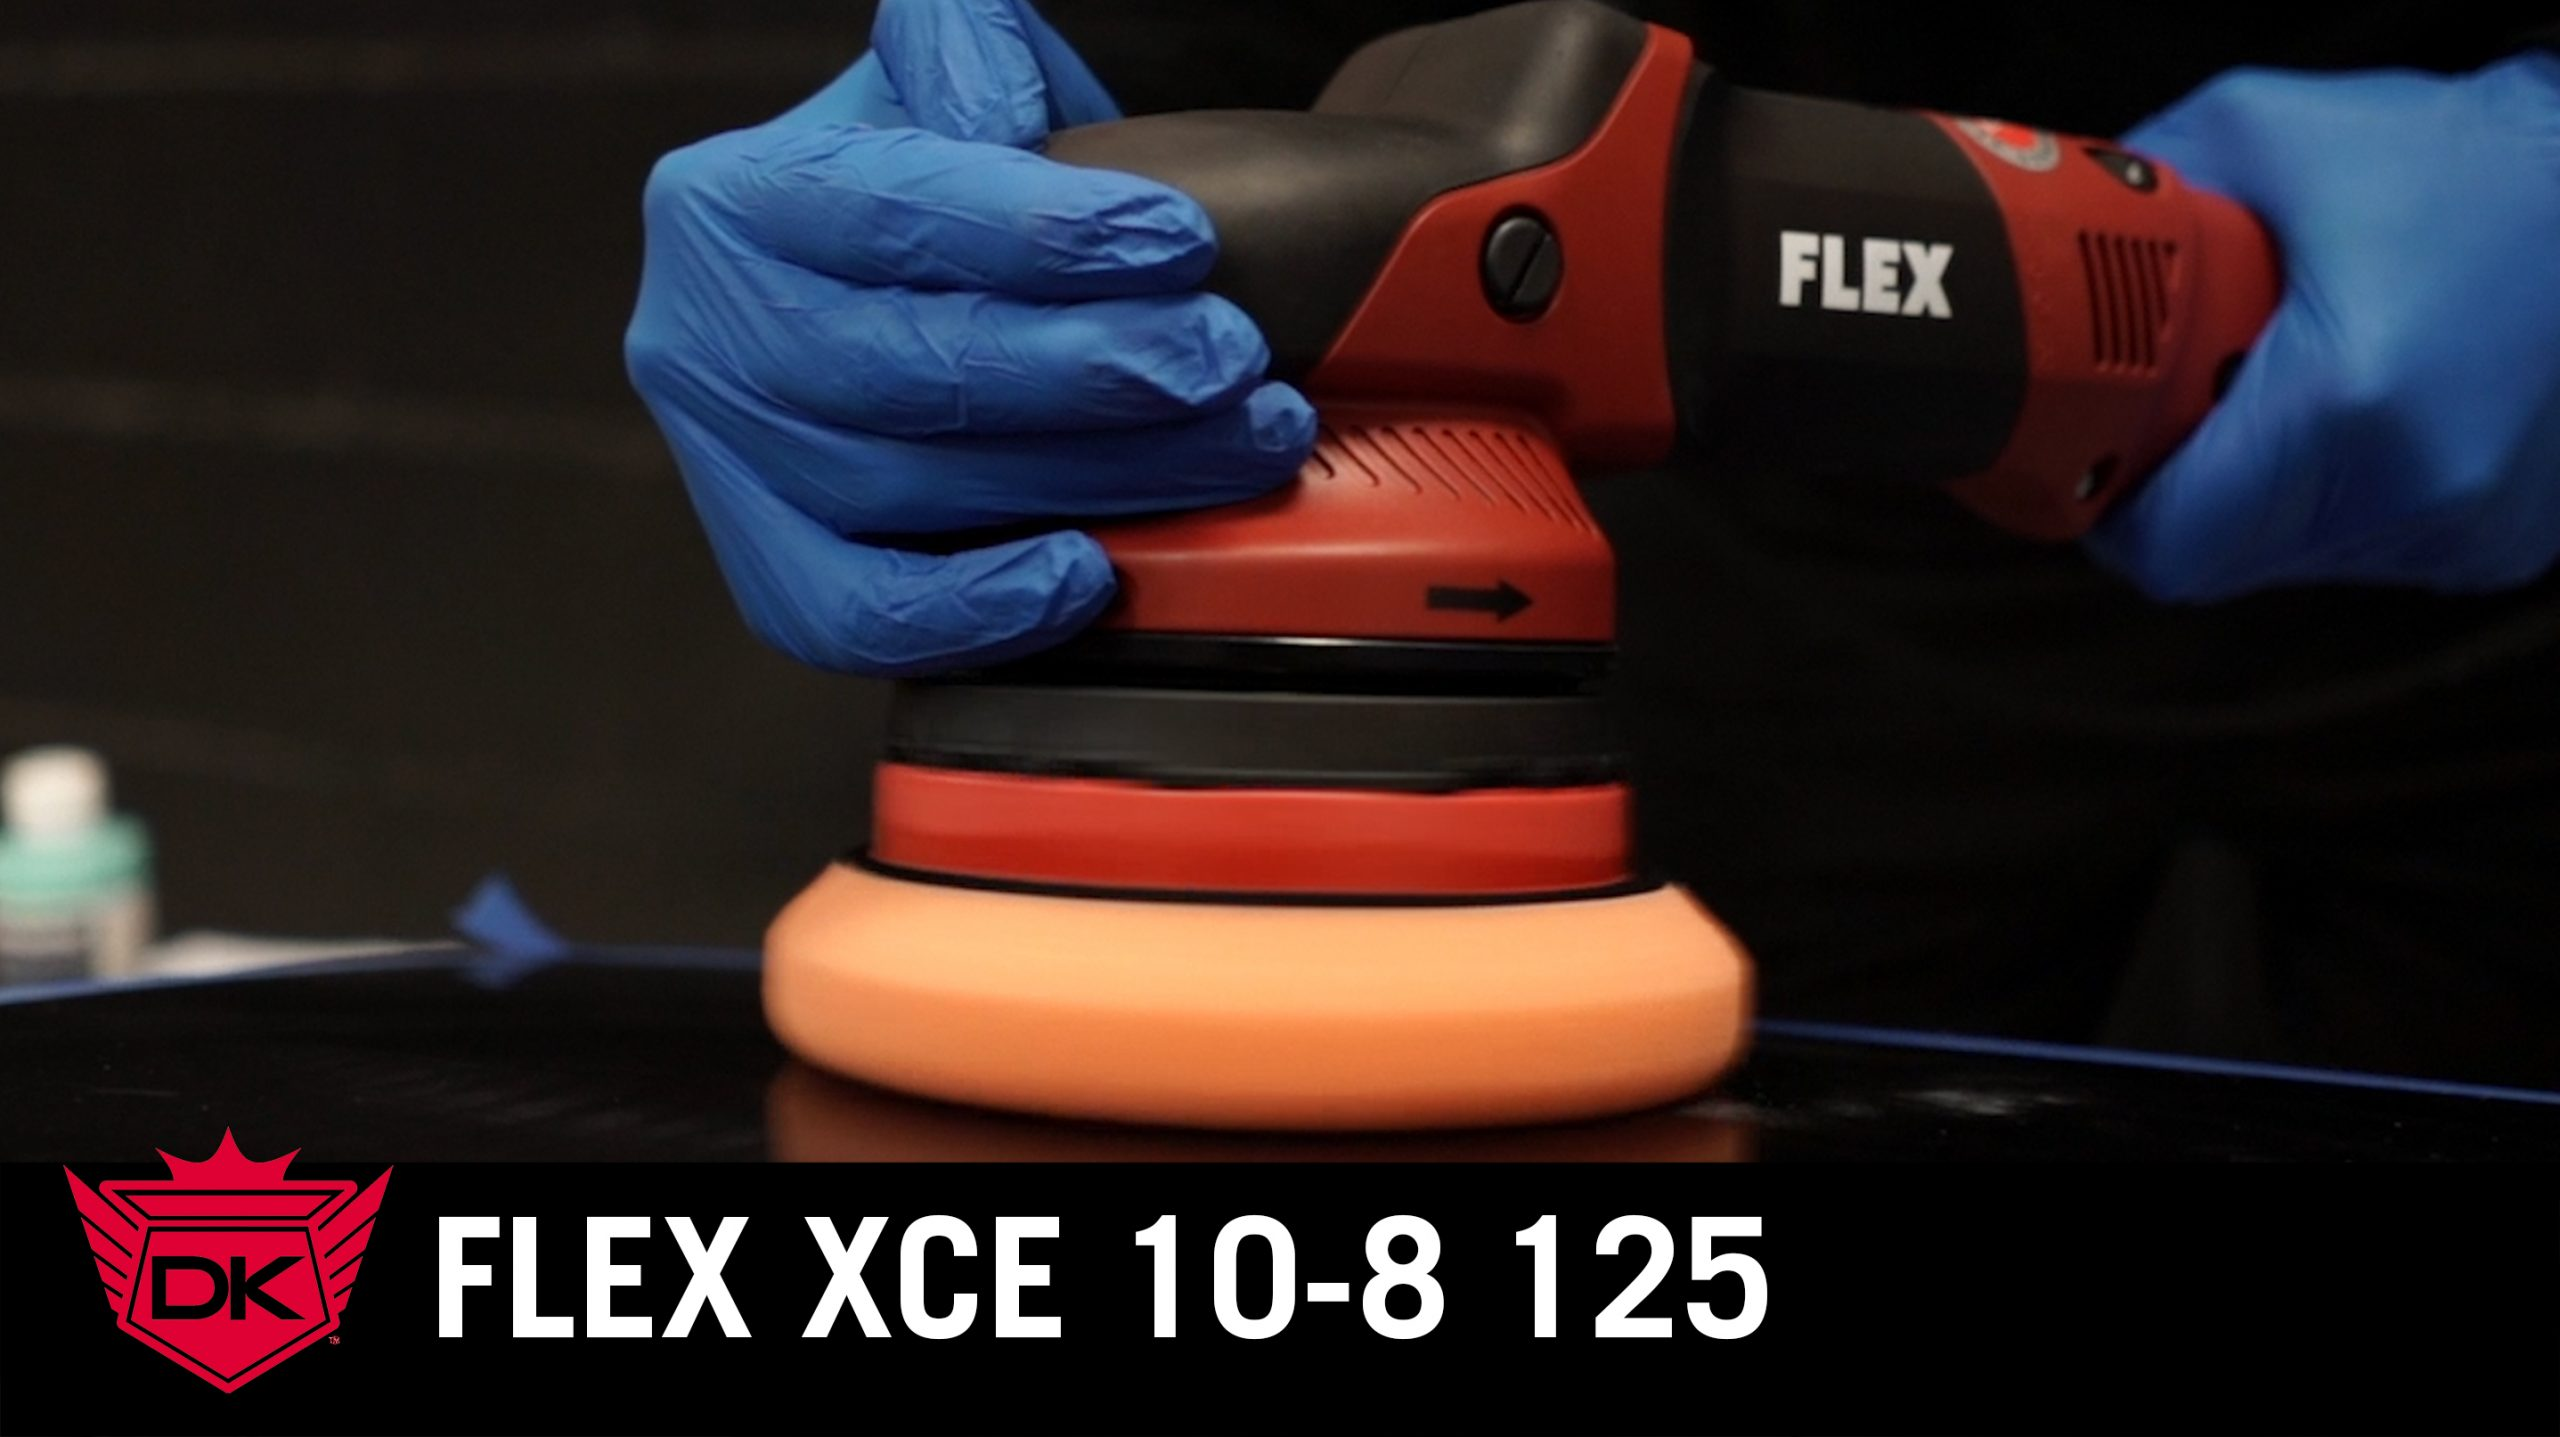 Flex XCE 10-8 125 Corded Polisher